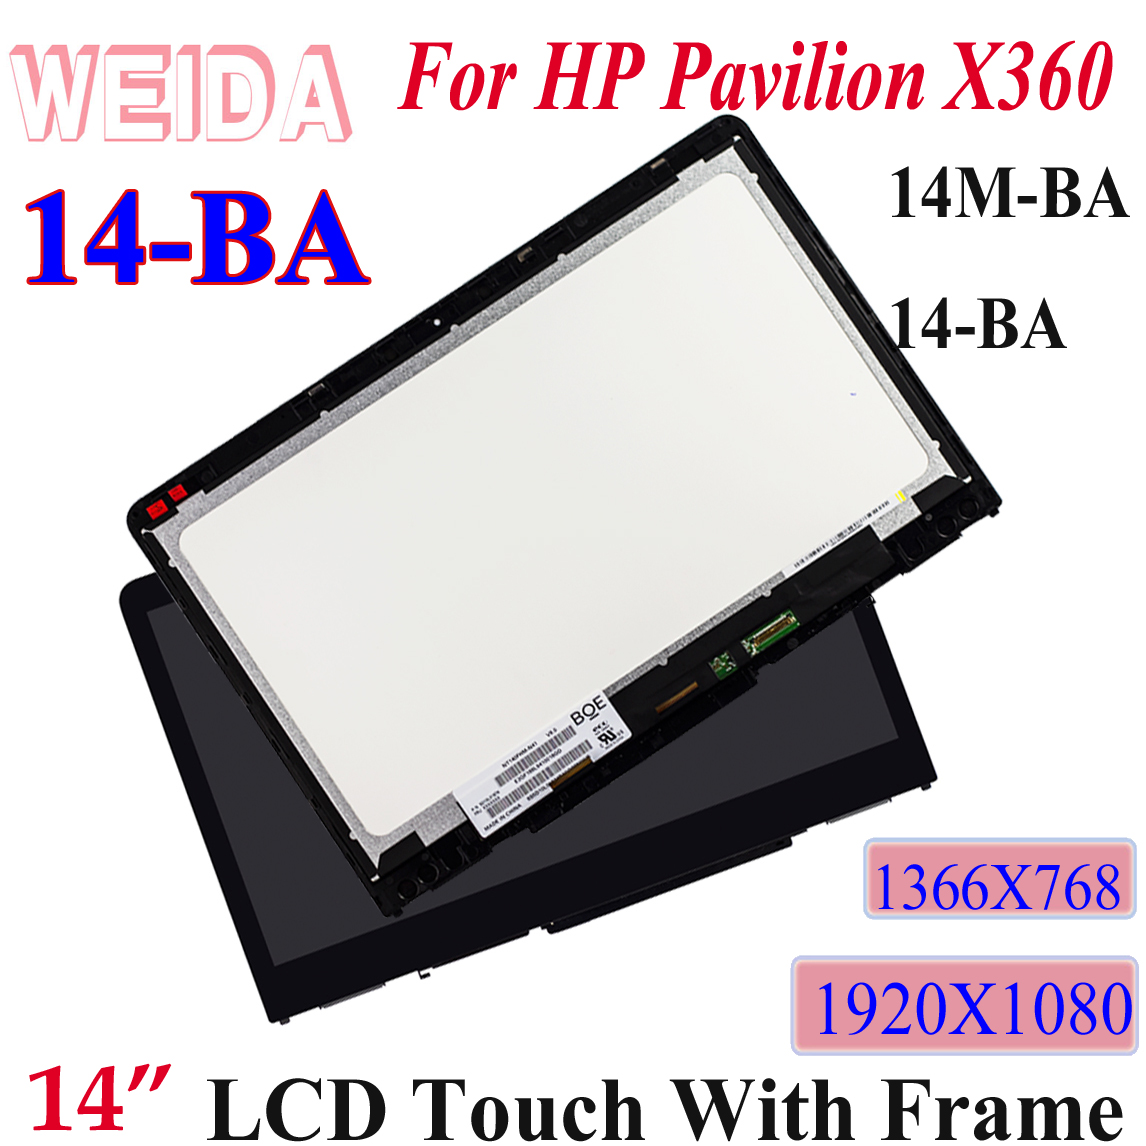 WEIDA LCD For HP PAVILION X360 14M-BA 14-BA Series 14